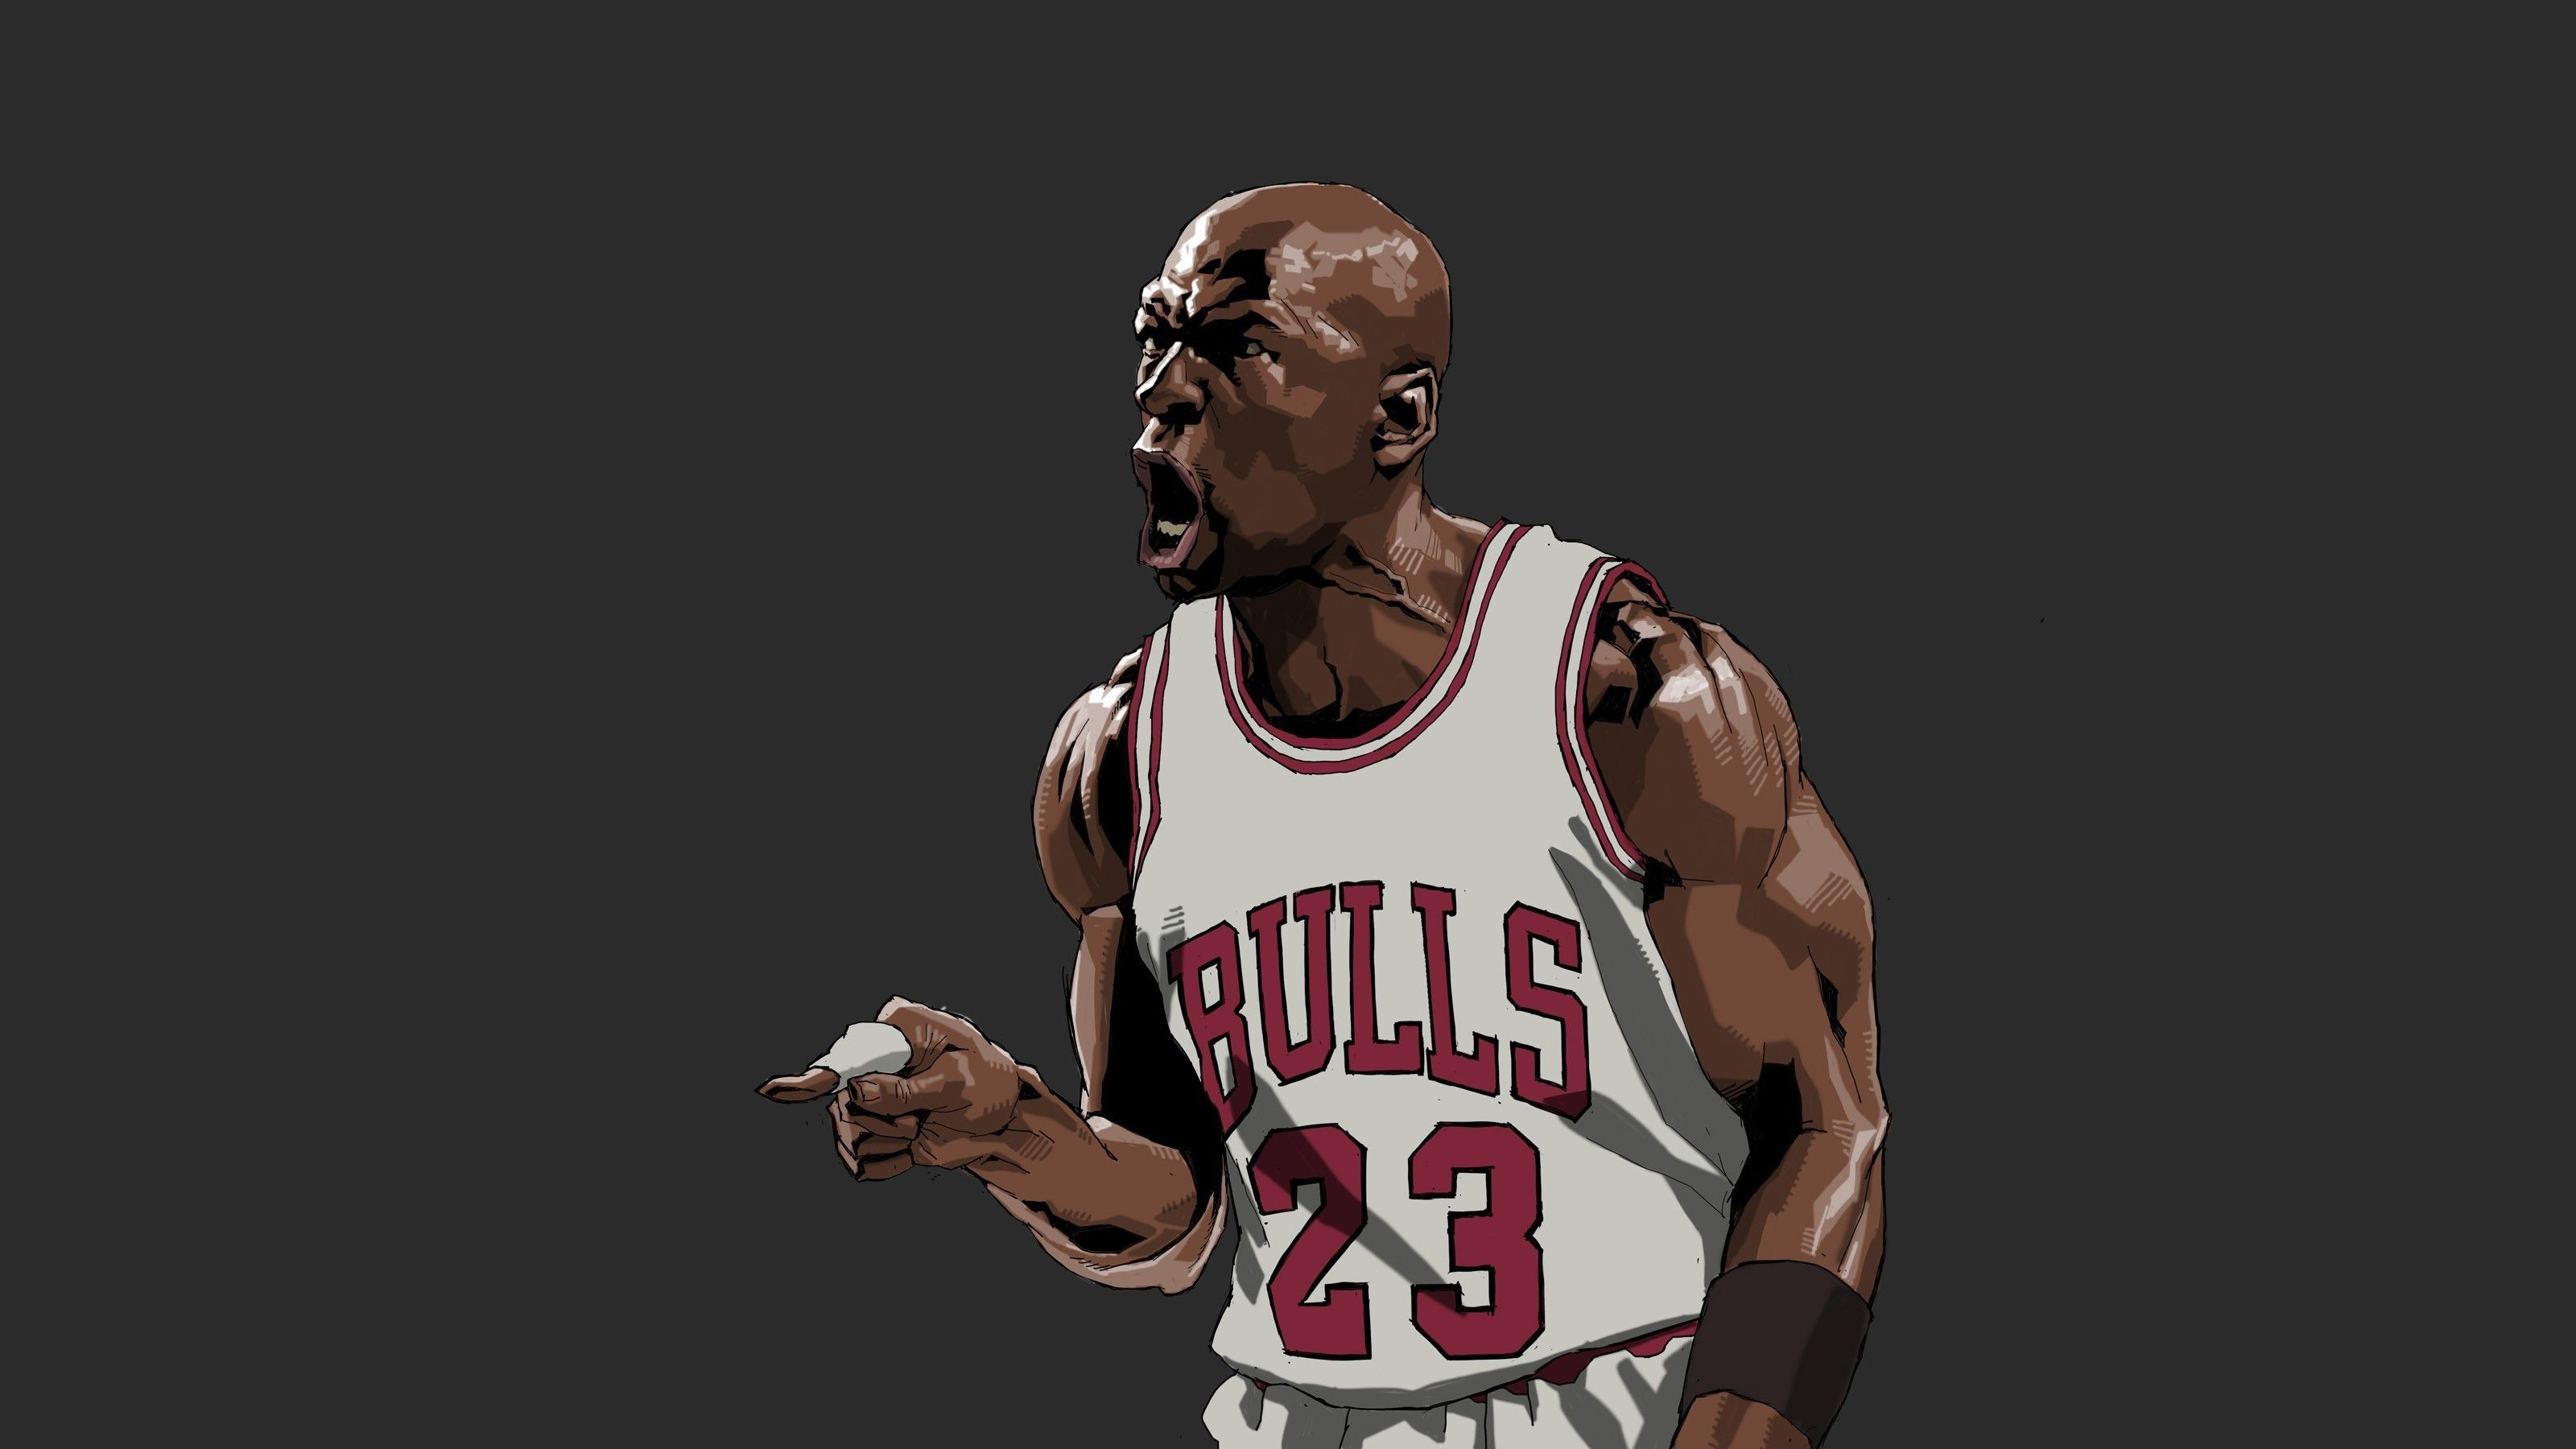 Michael Jordan Wallpapers Top Free Michael Jordan Backgrounds Wallpaperaccess